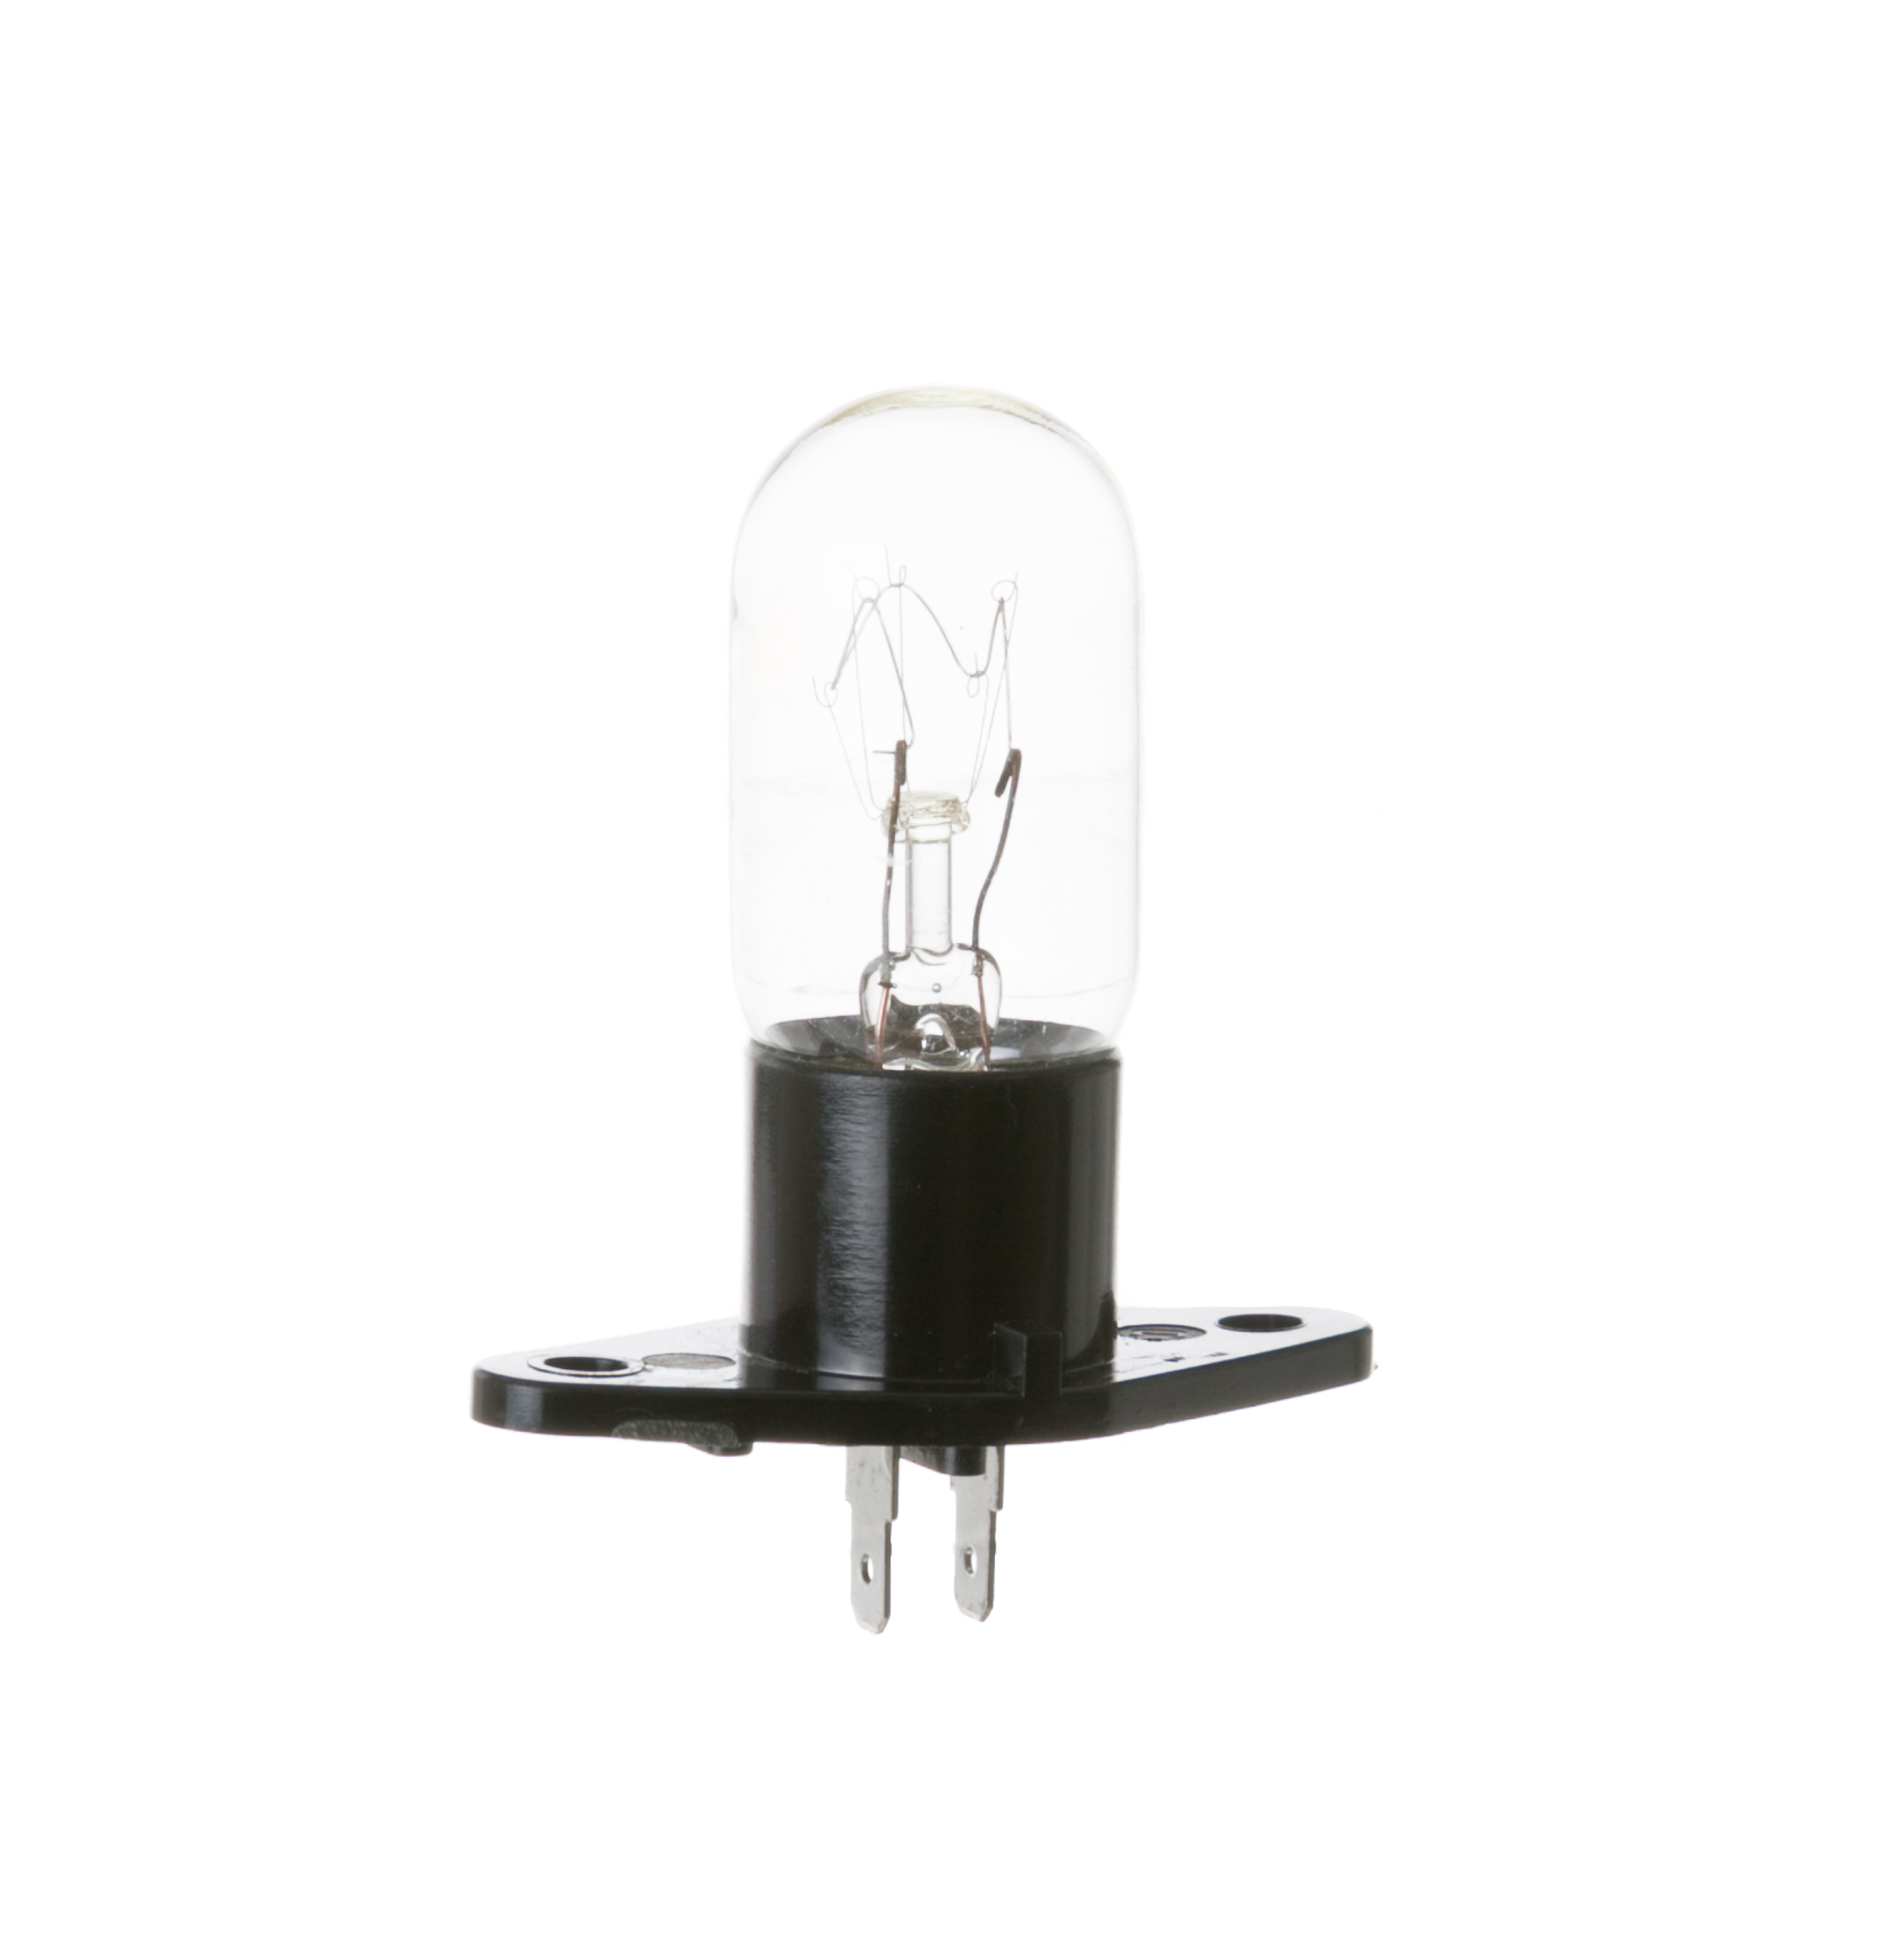 wb36x10063 microwave bulb 125v 20w ge parts. Black Bedroom Furniture Sets. Home Design Ideas